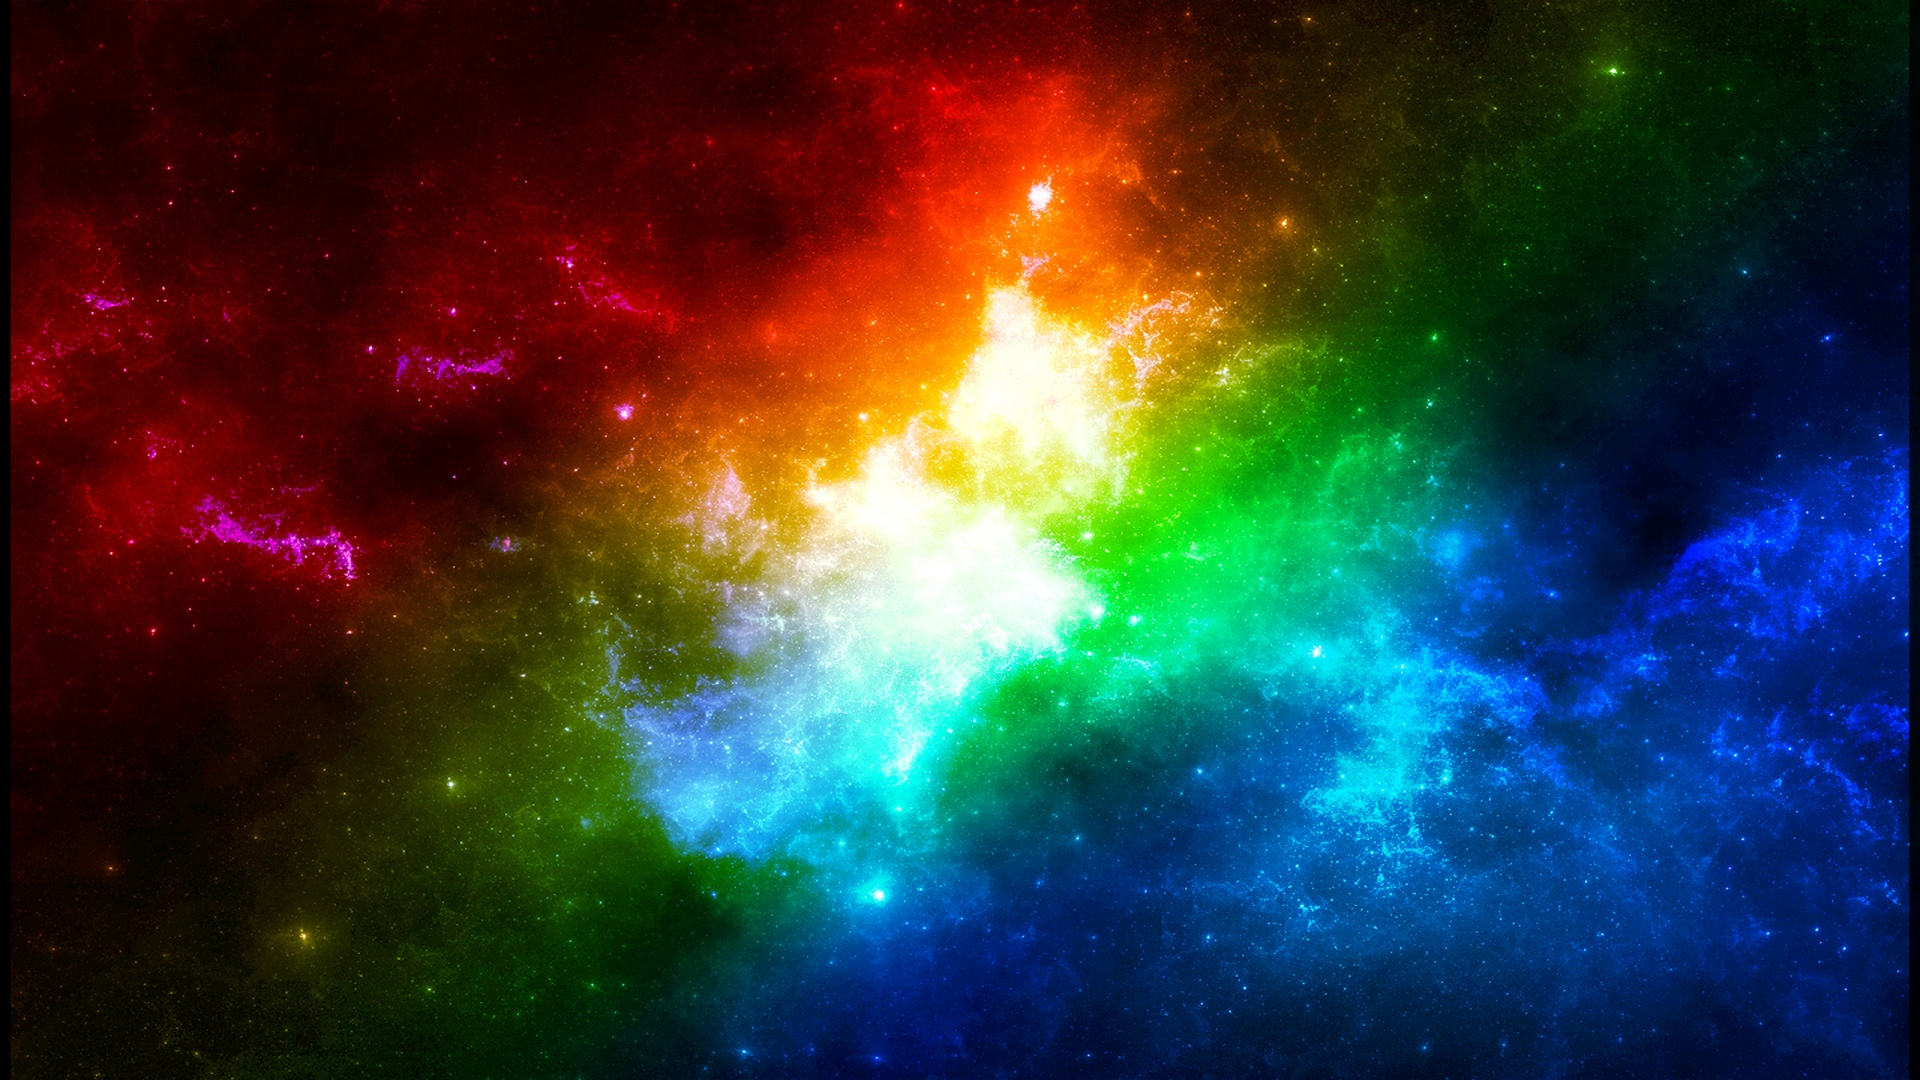 Colorful nebula wallpaper Wallpaper Wide HD 1920x1080